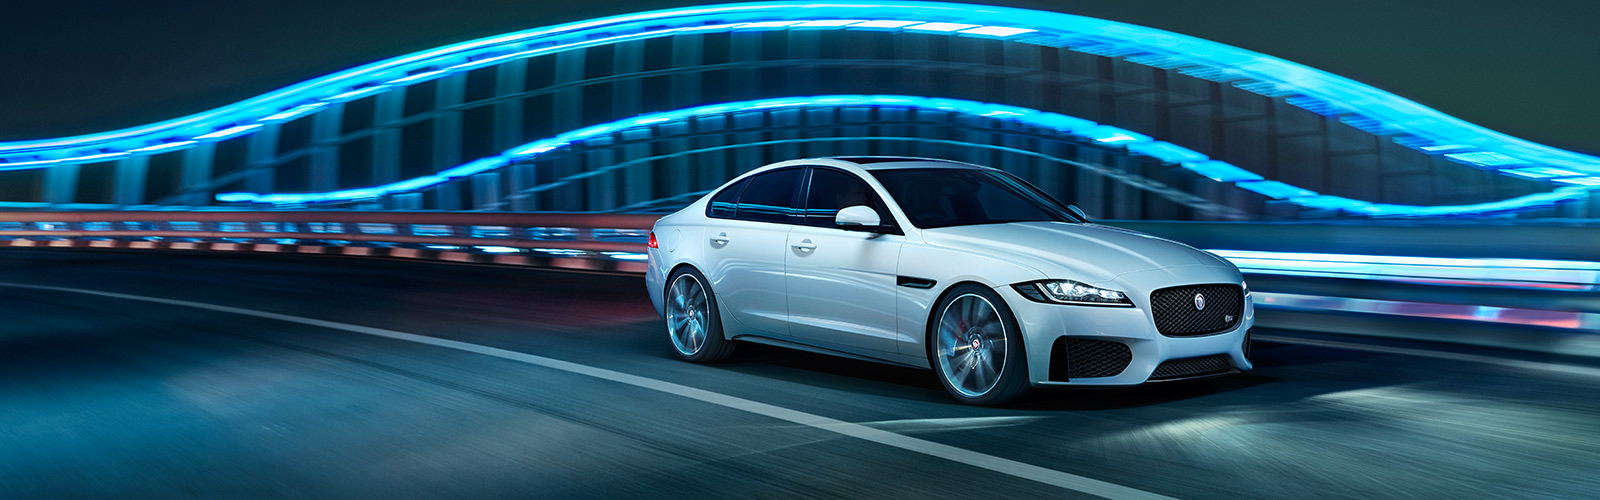 IMG_WRAPPER_HTB_OWNERSHIP_S&M_JAGUAR_PREMIUM_CARE_HTB_Device-Desktop_1600x500.jpg